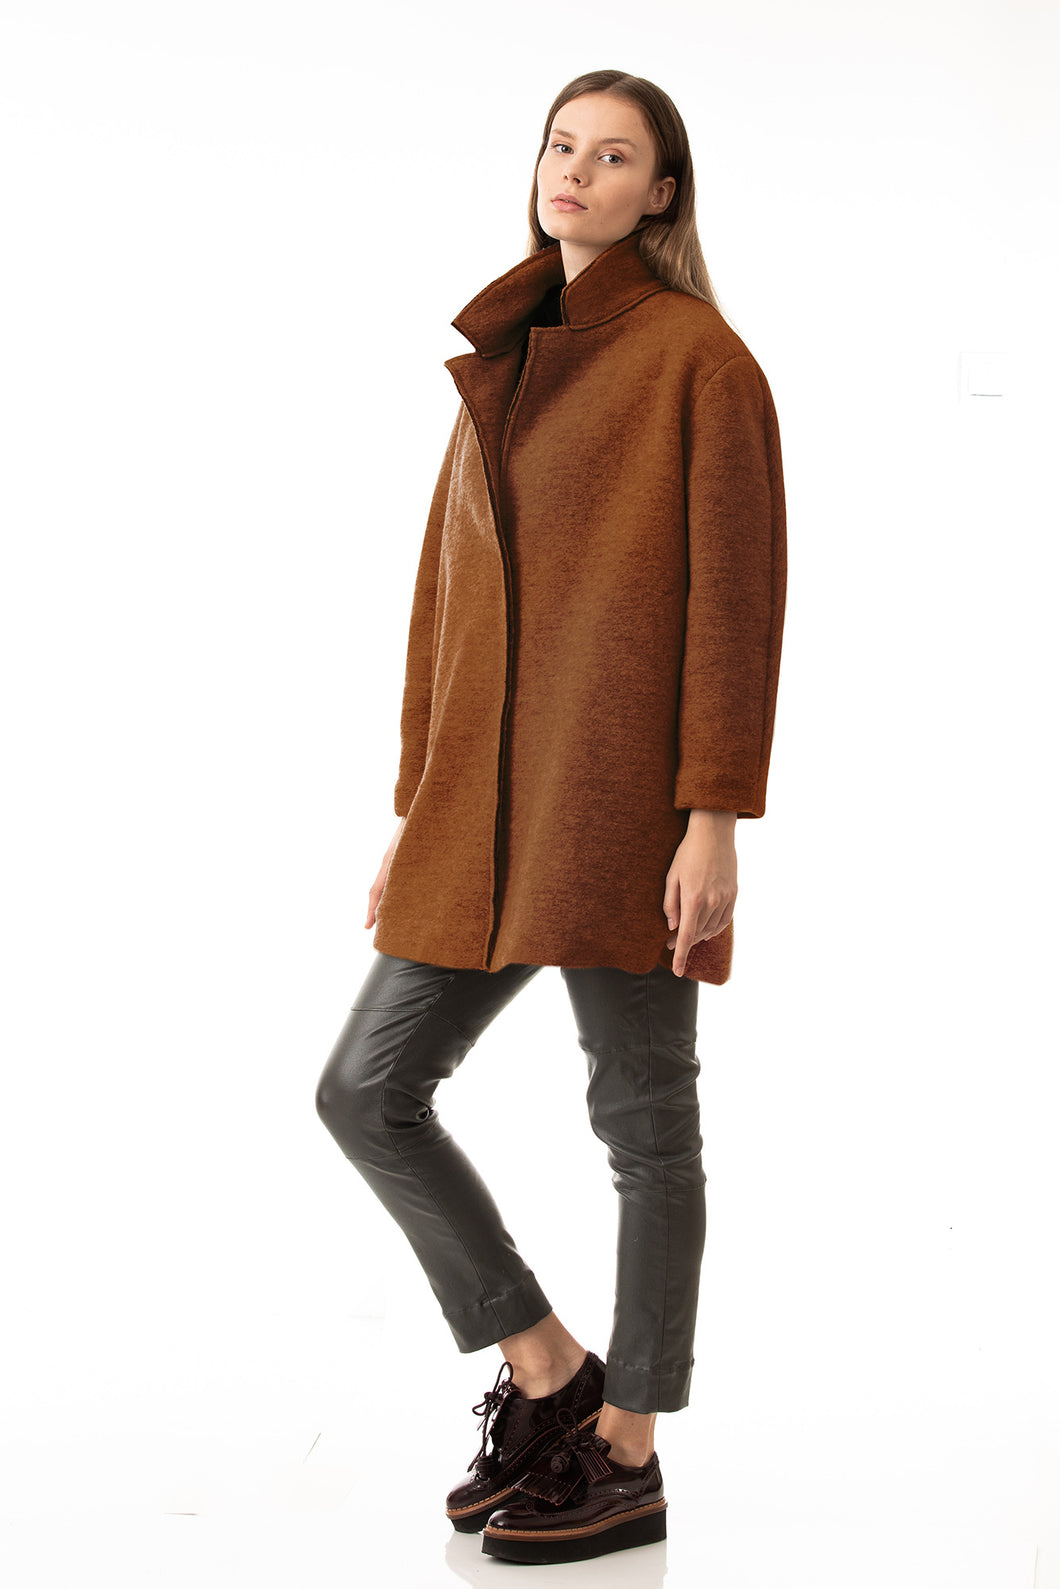 Oversized coat in colour of terra cotta